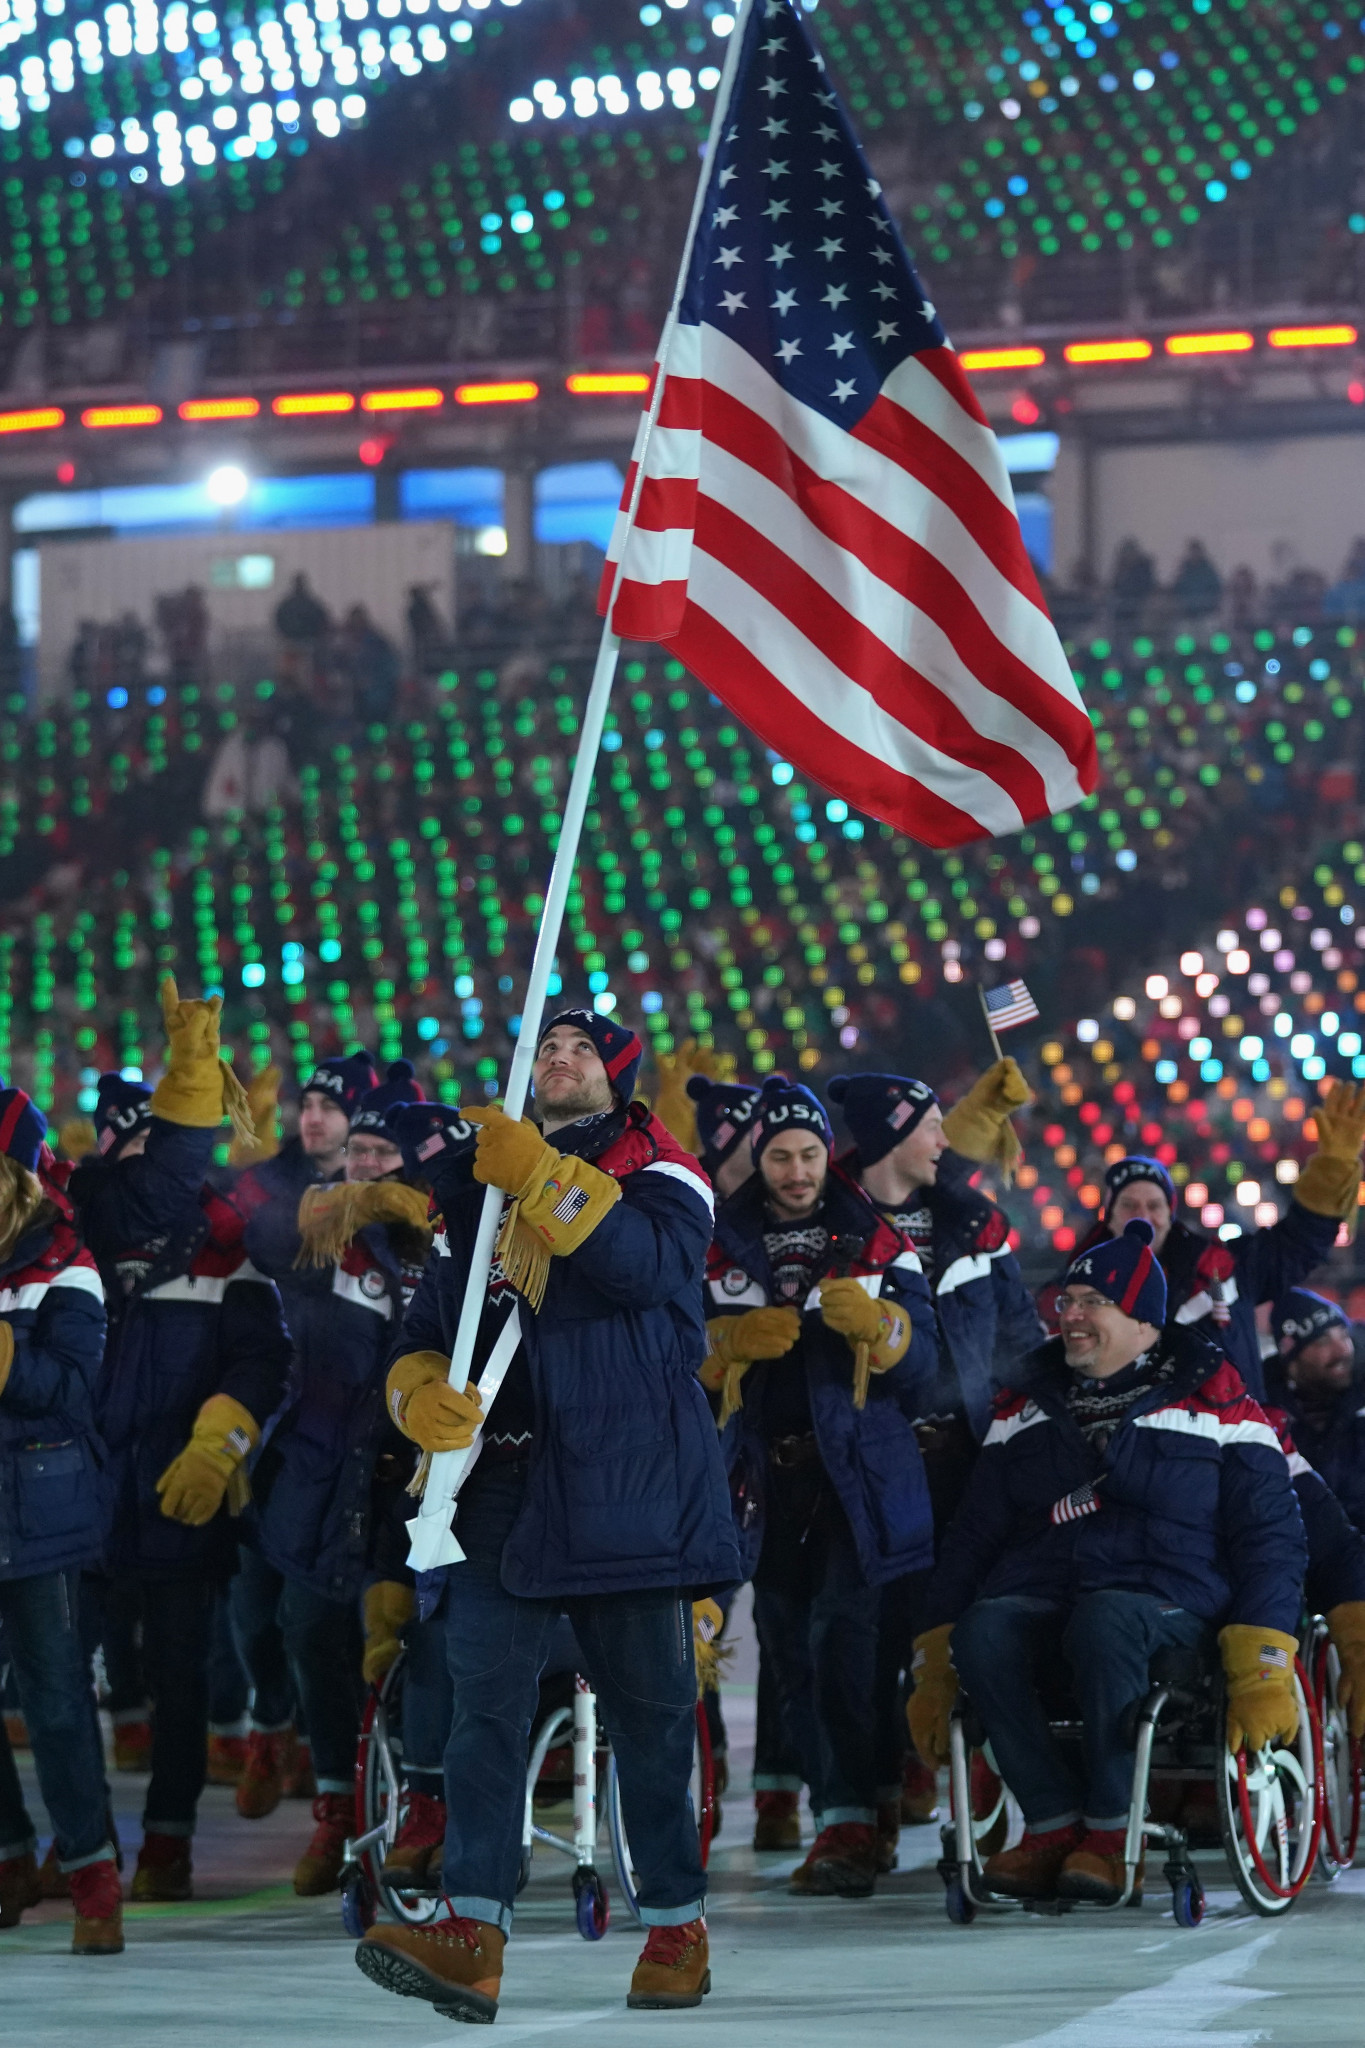 Snowboarder Mike Schultz was selected as the US' flagbearer for the Opening Ceremony of the Games ©Getty Images